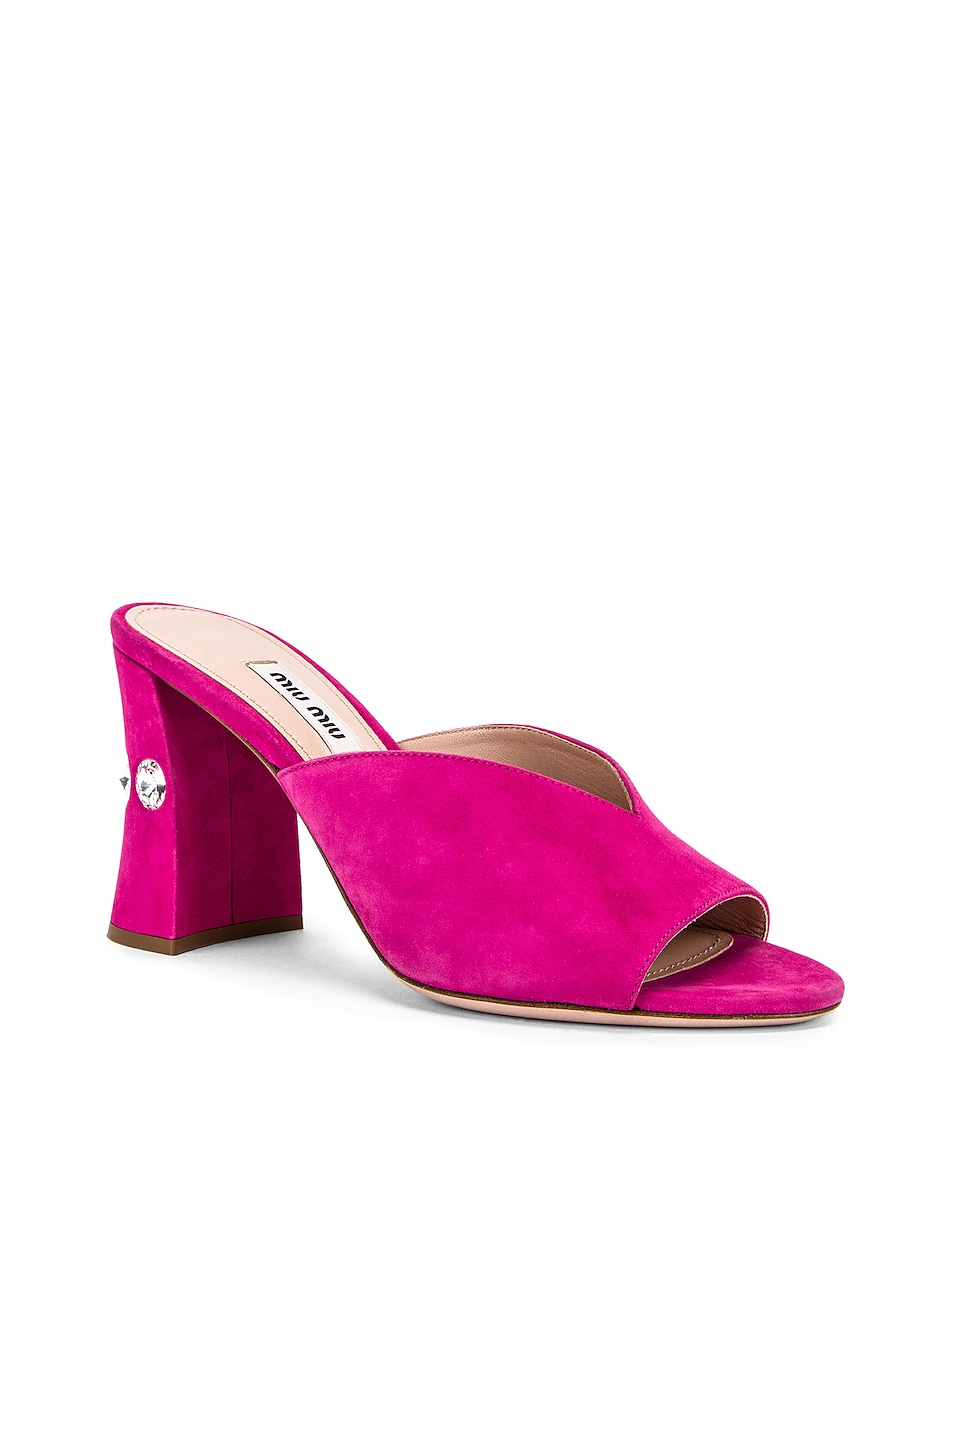 Image 2 of Miu Miu Jeweled Mules in Pink